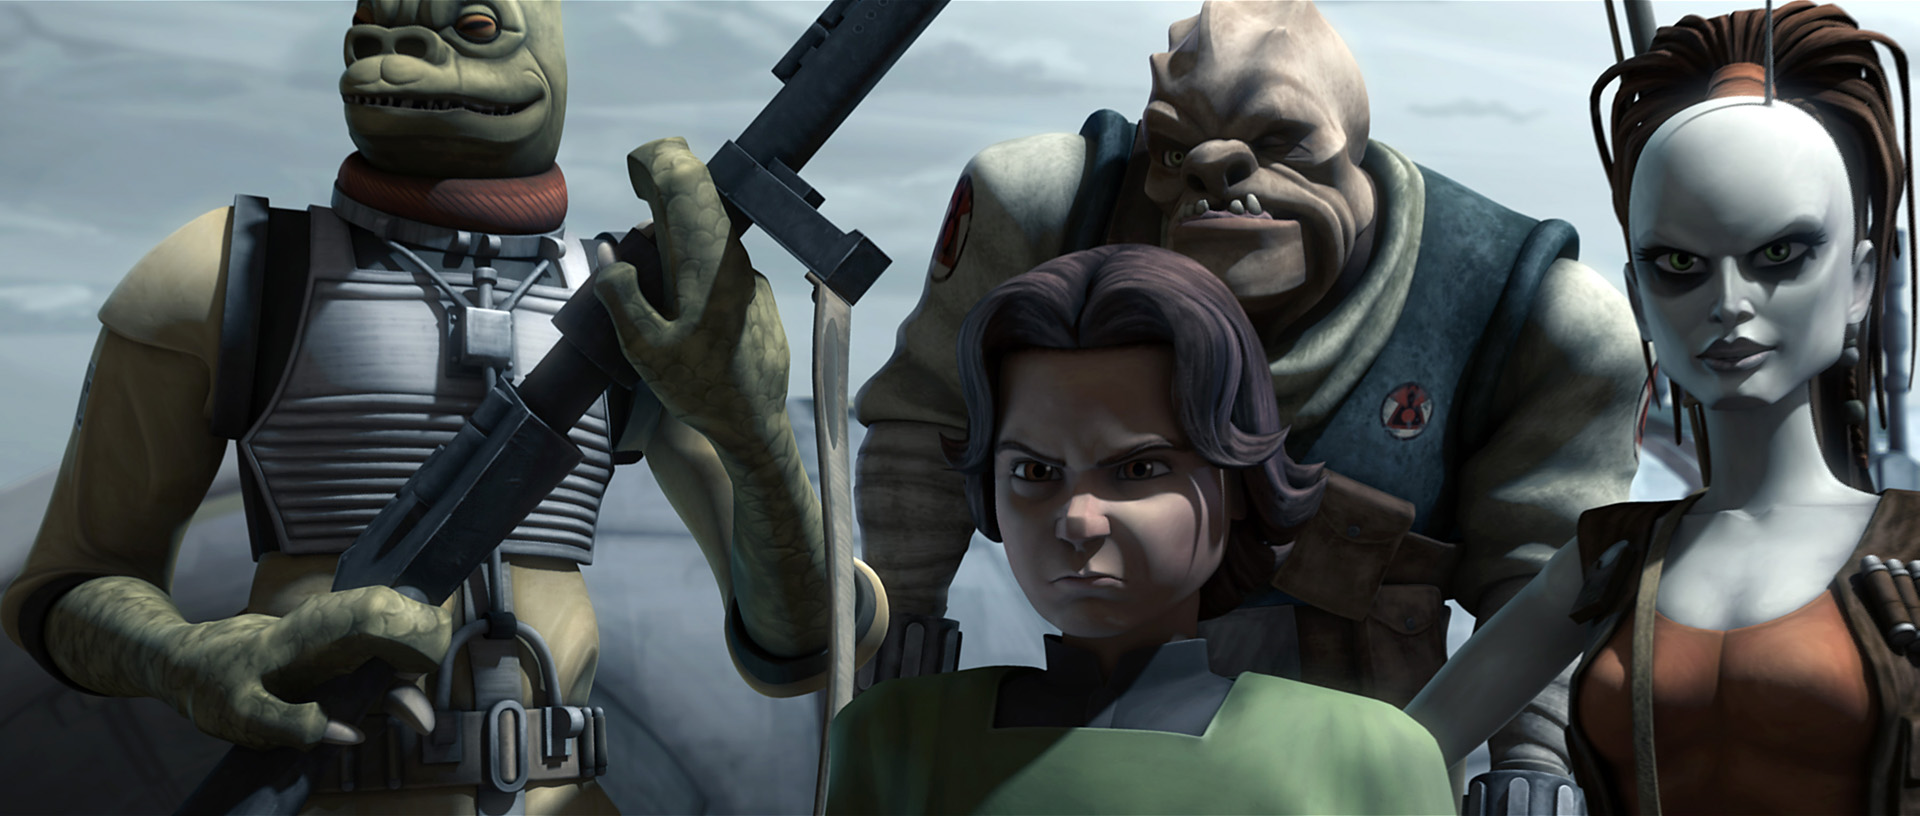 Boba Fett last appeared in the Star Wars universe as a young boy in The Clone Wars series.